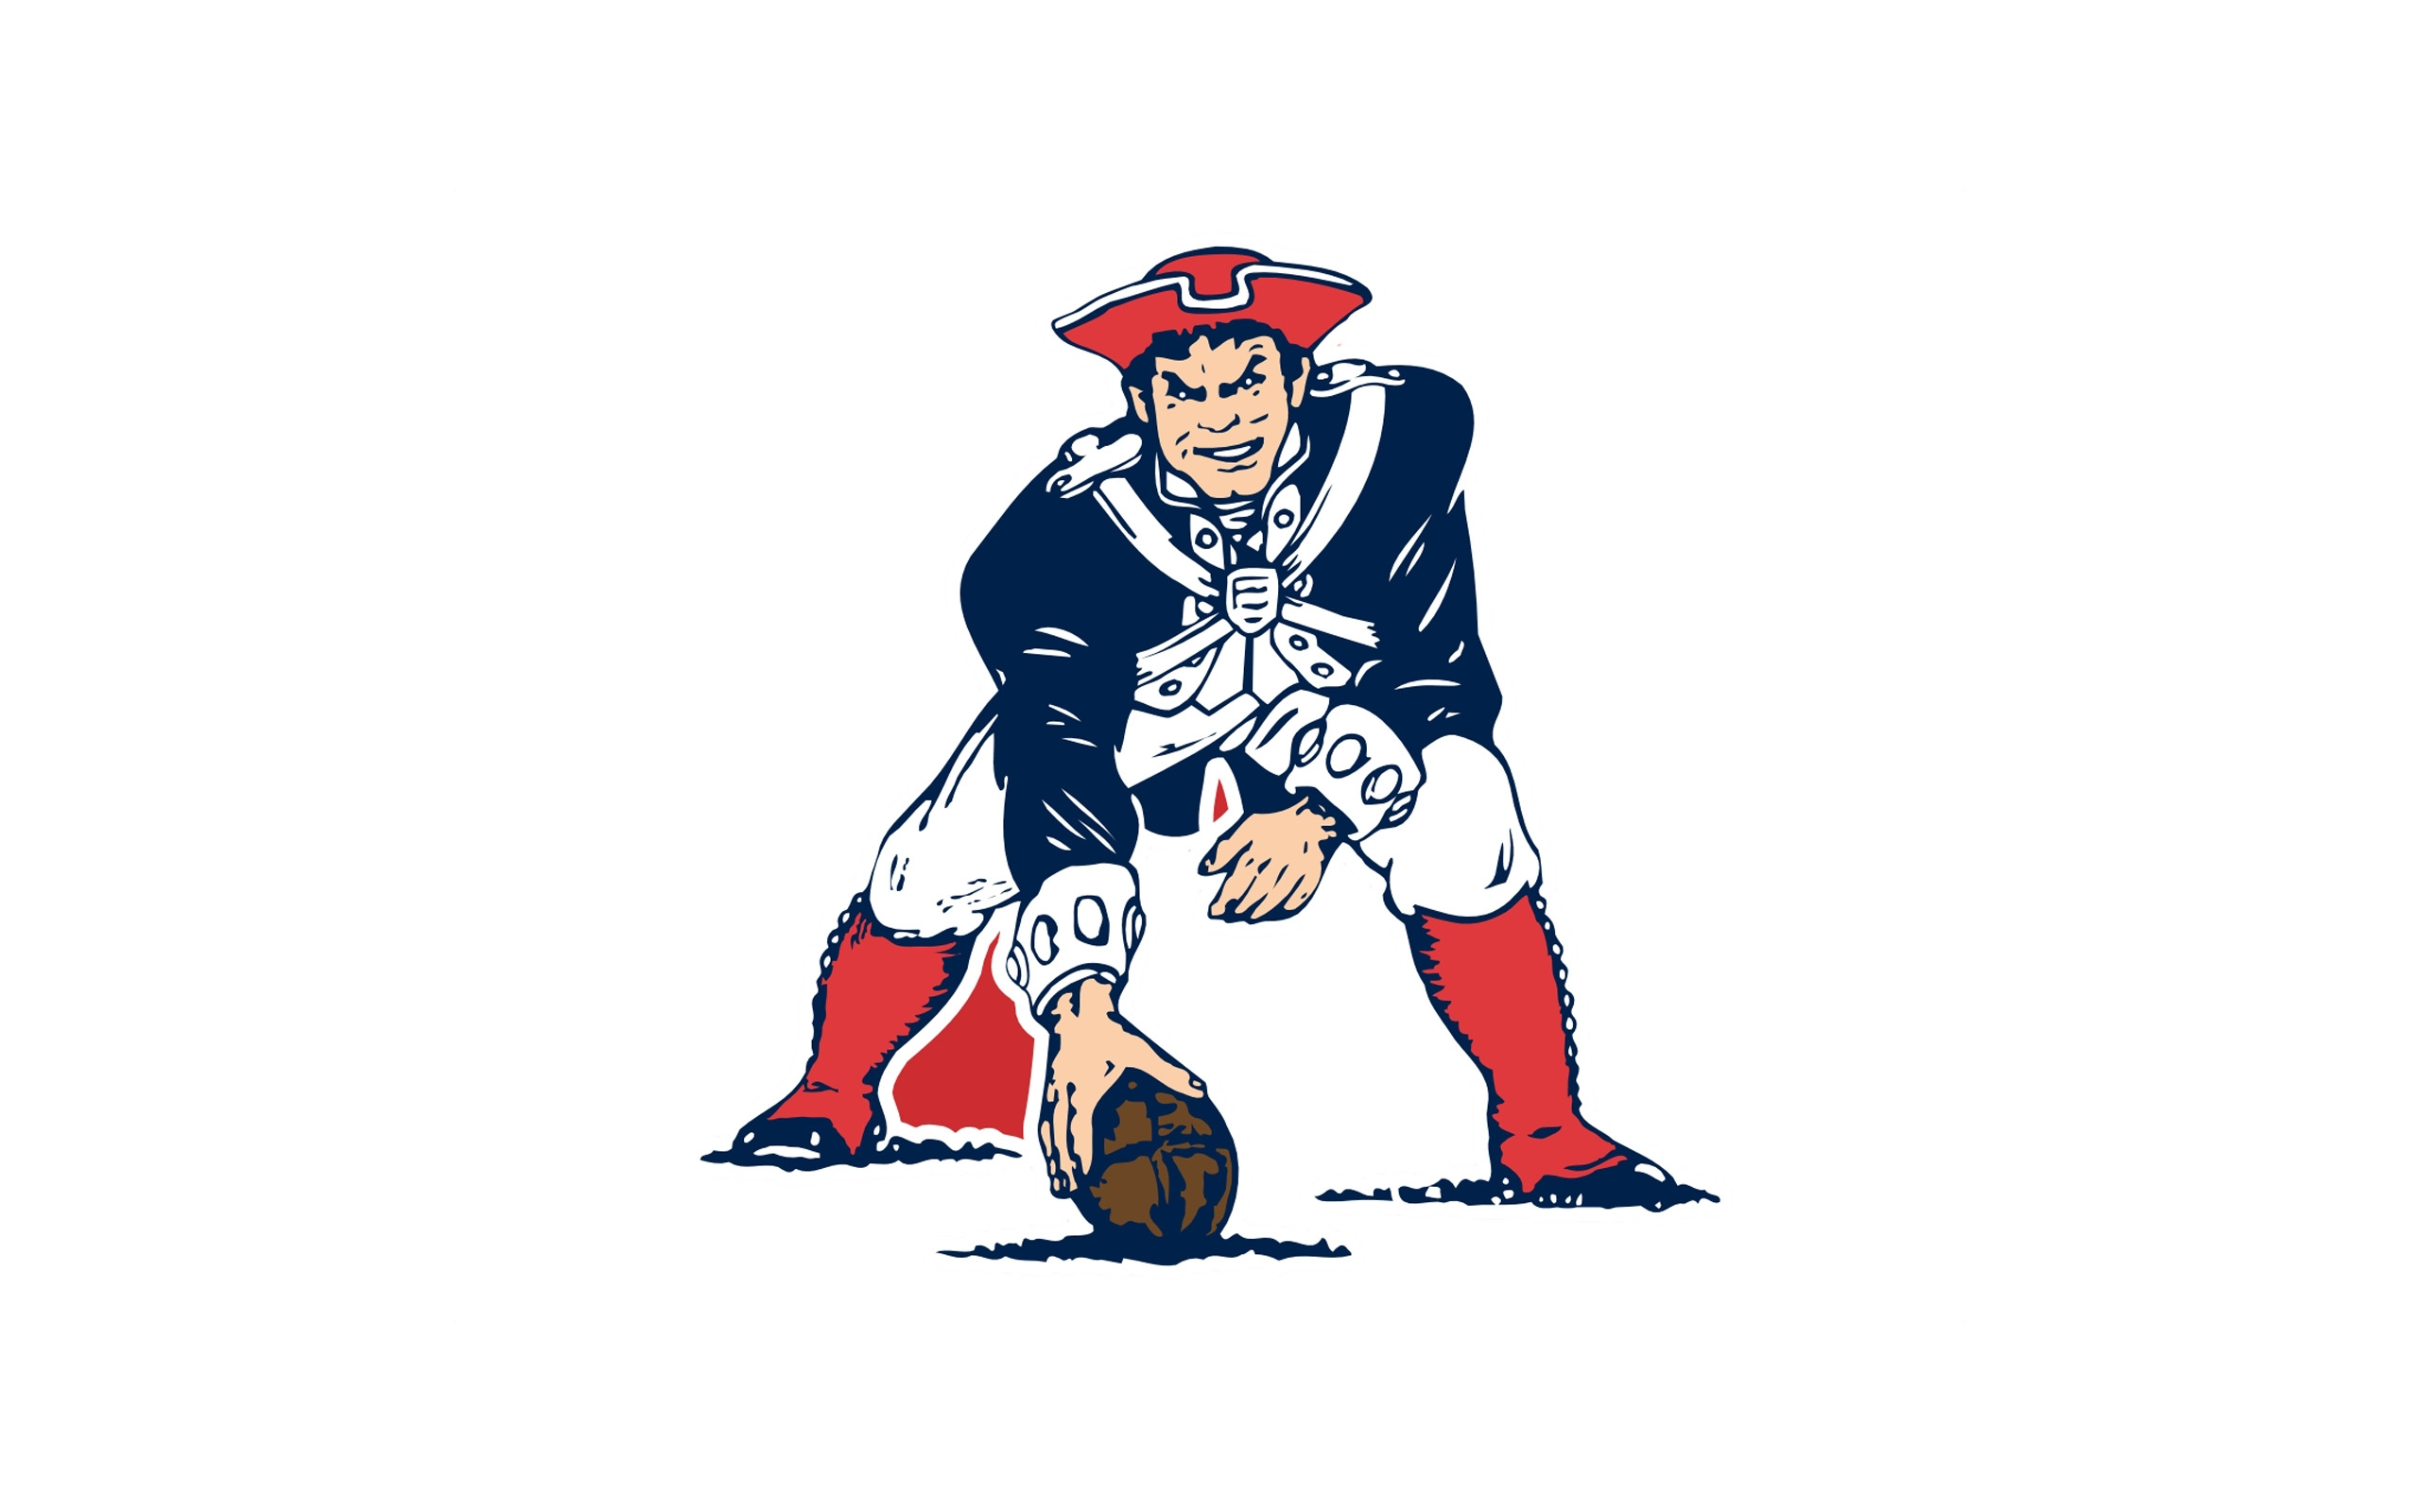 Free New England Patriots background image | New England Patriots ...